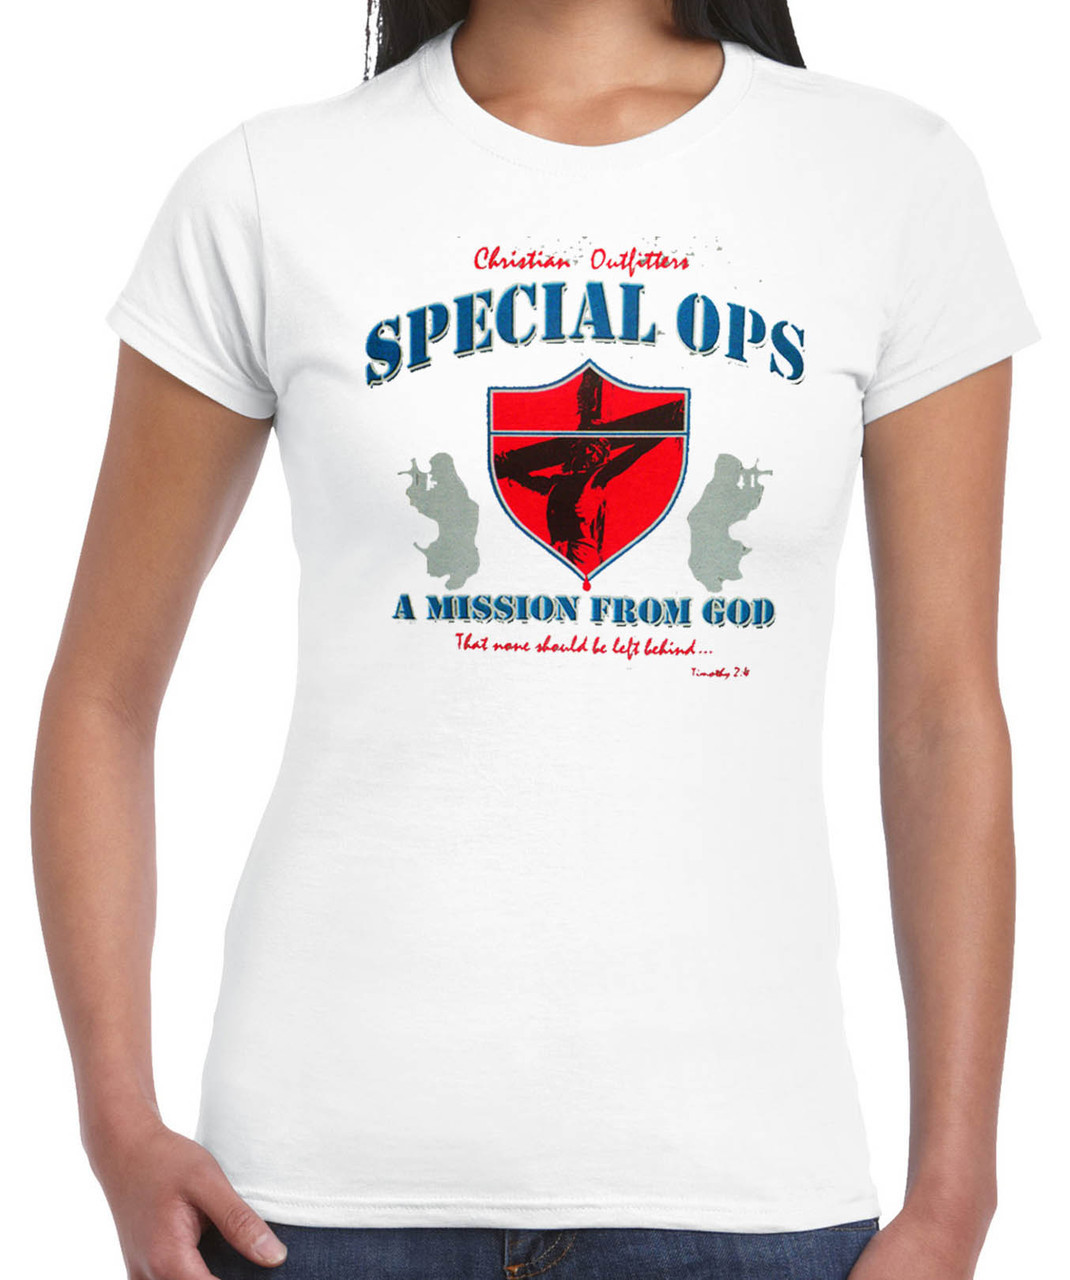 Special Ops Christian Outfitters T-Shirt